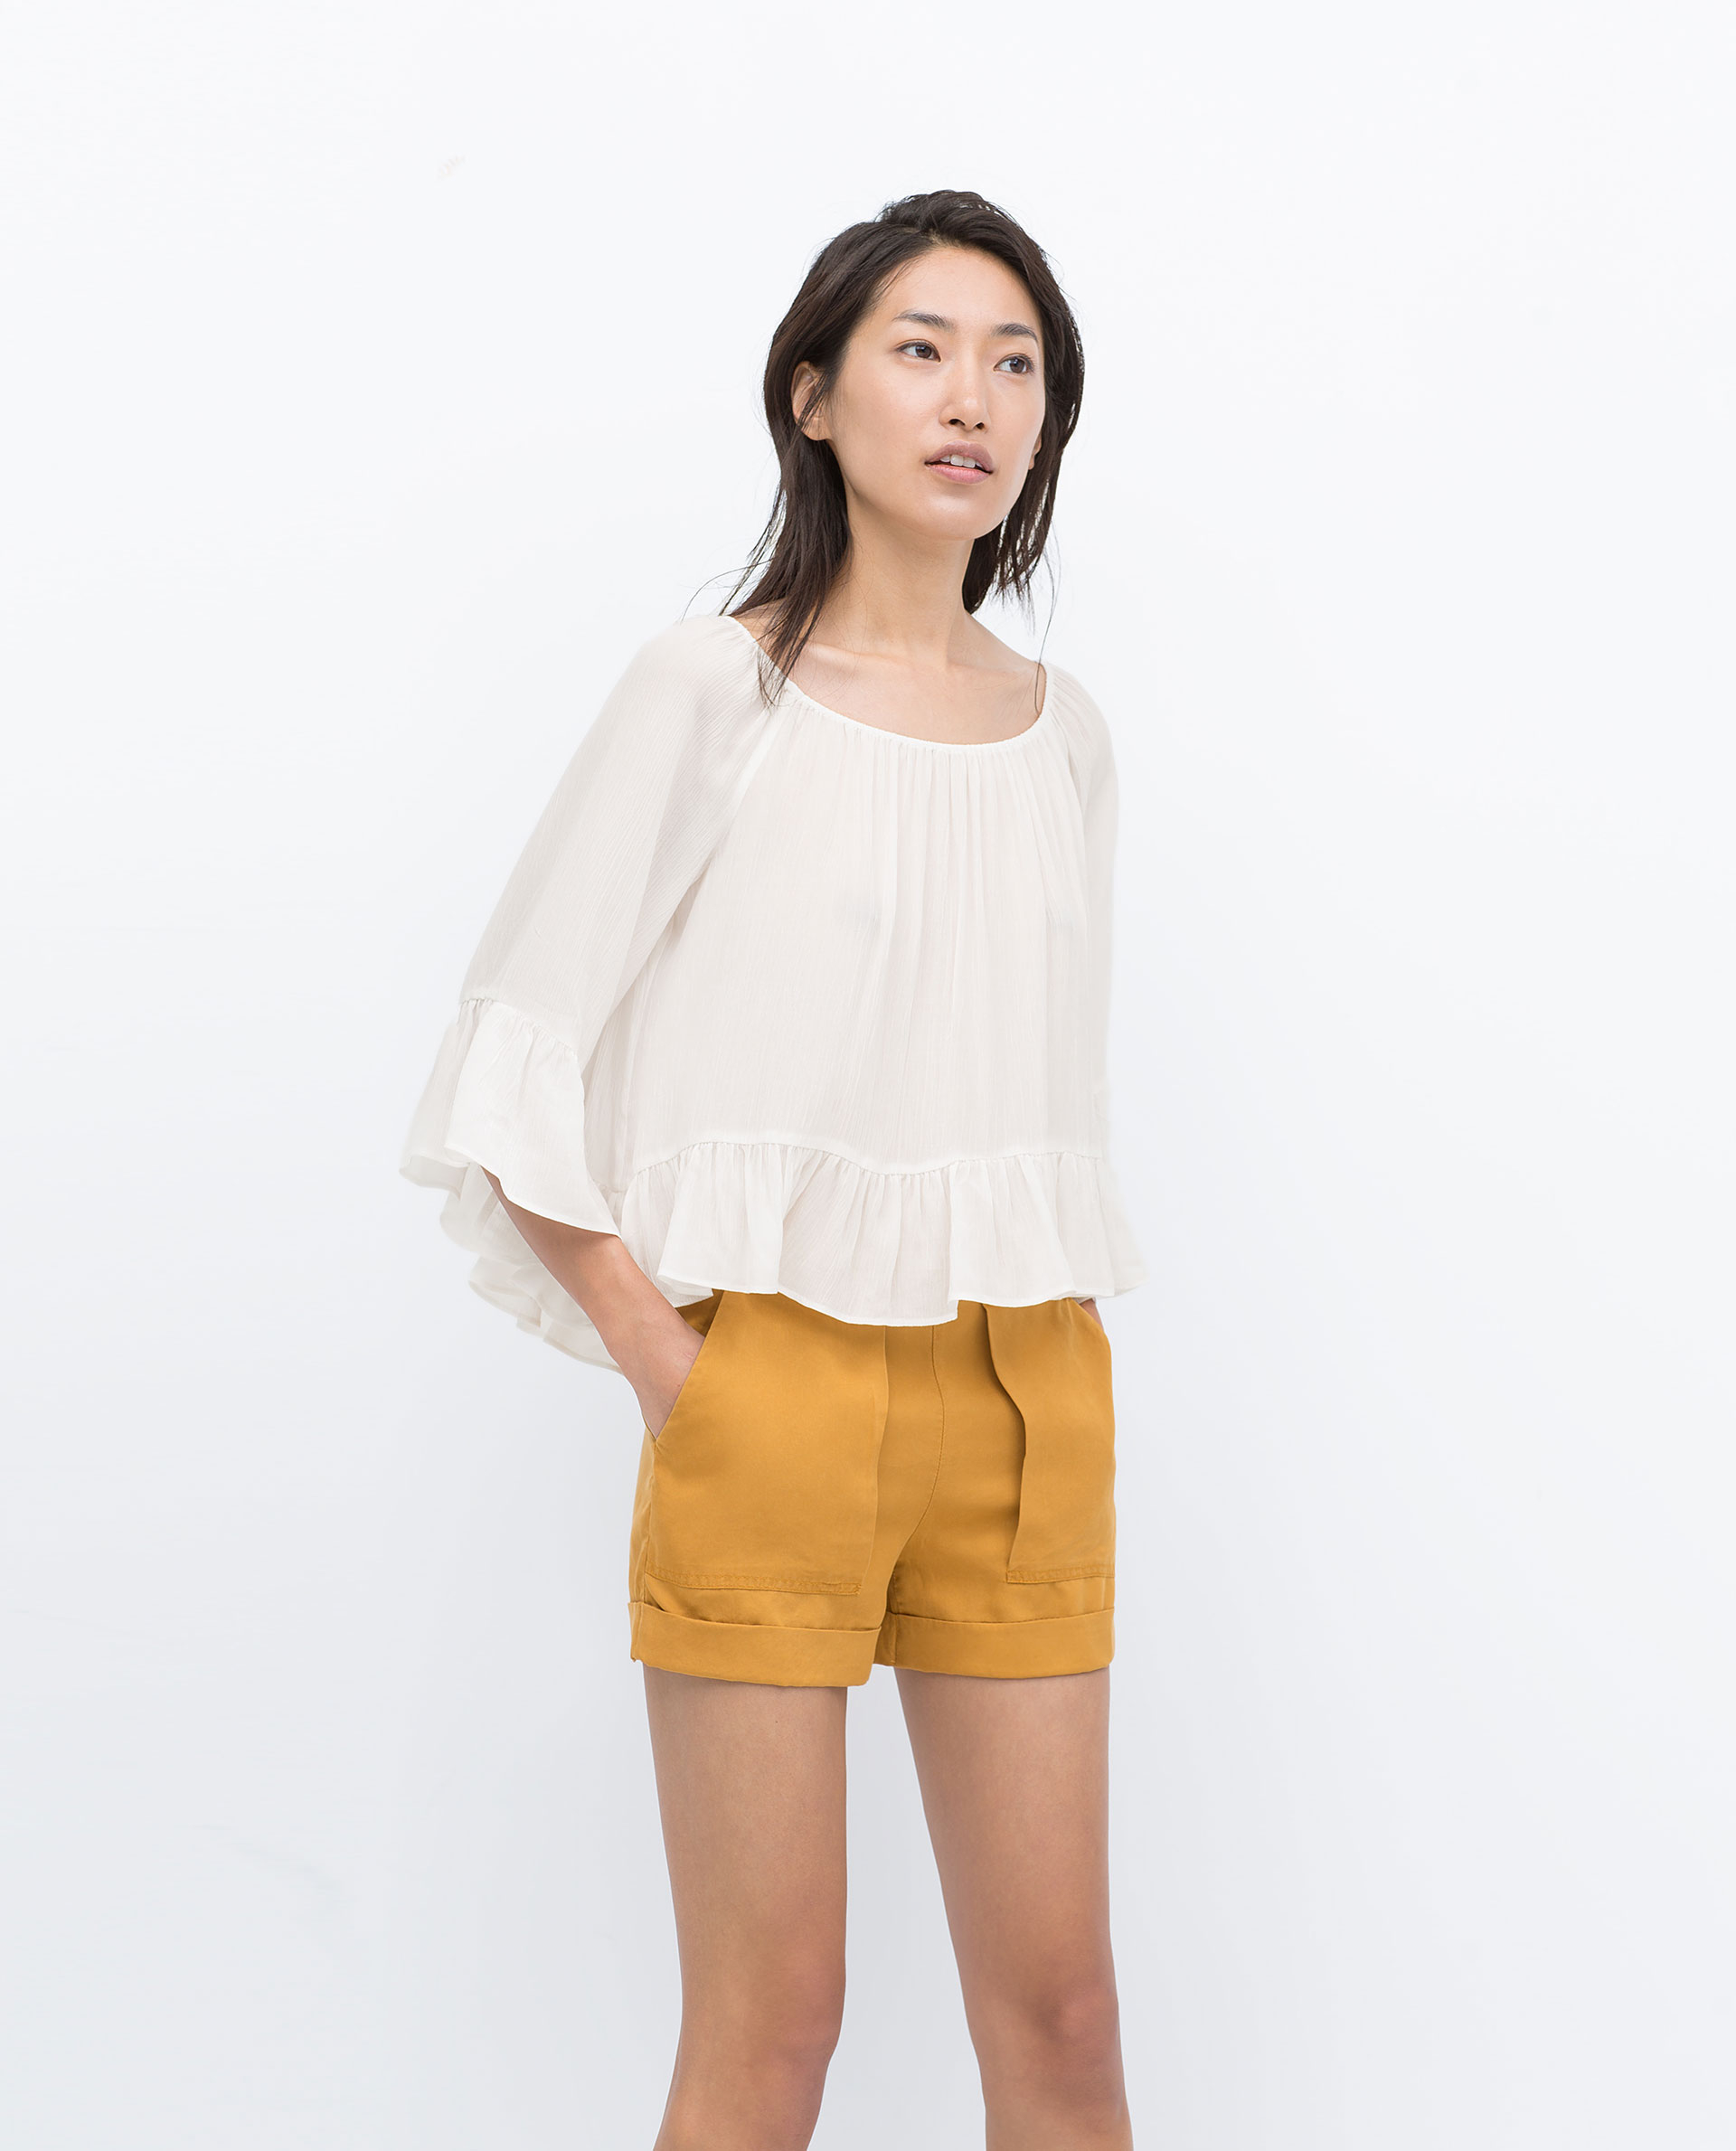 Thanks to the low rates at Vestiaire Collective, you will finally be able to offer yourself this model of Shorts from ZARA without spending your whole budget. Choosing from numerous fabrics and brands, pick one article according to your preferences and get yourself the style of Shorts perfect for you.